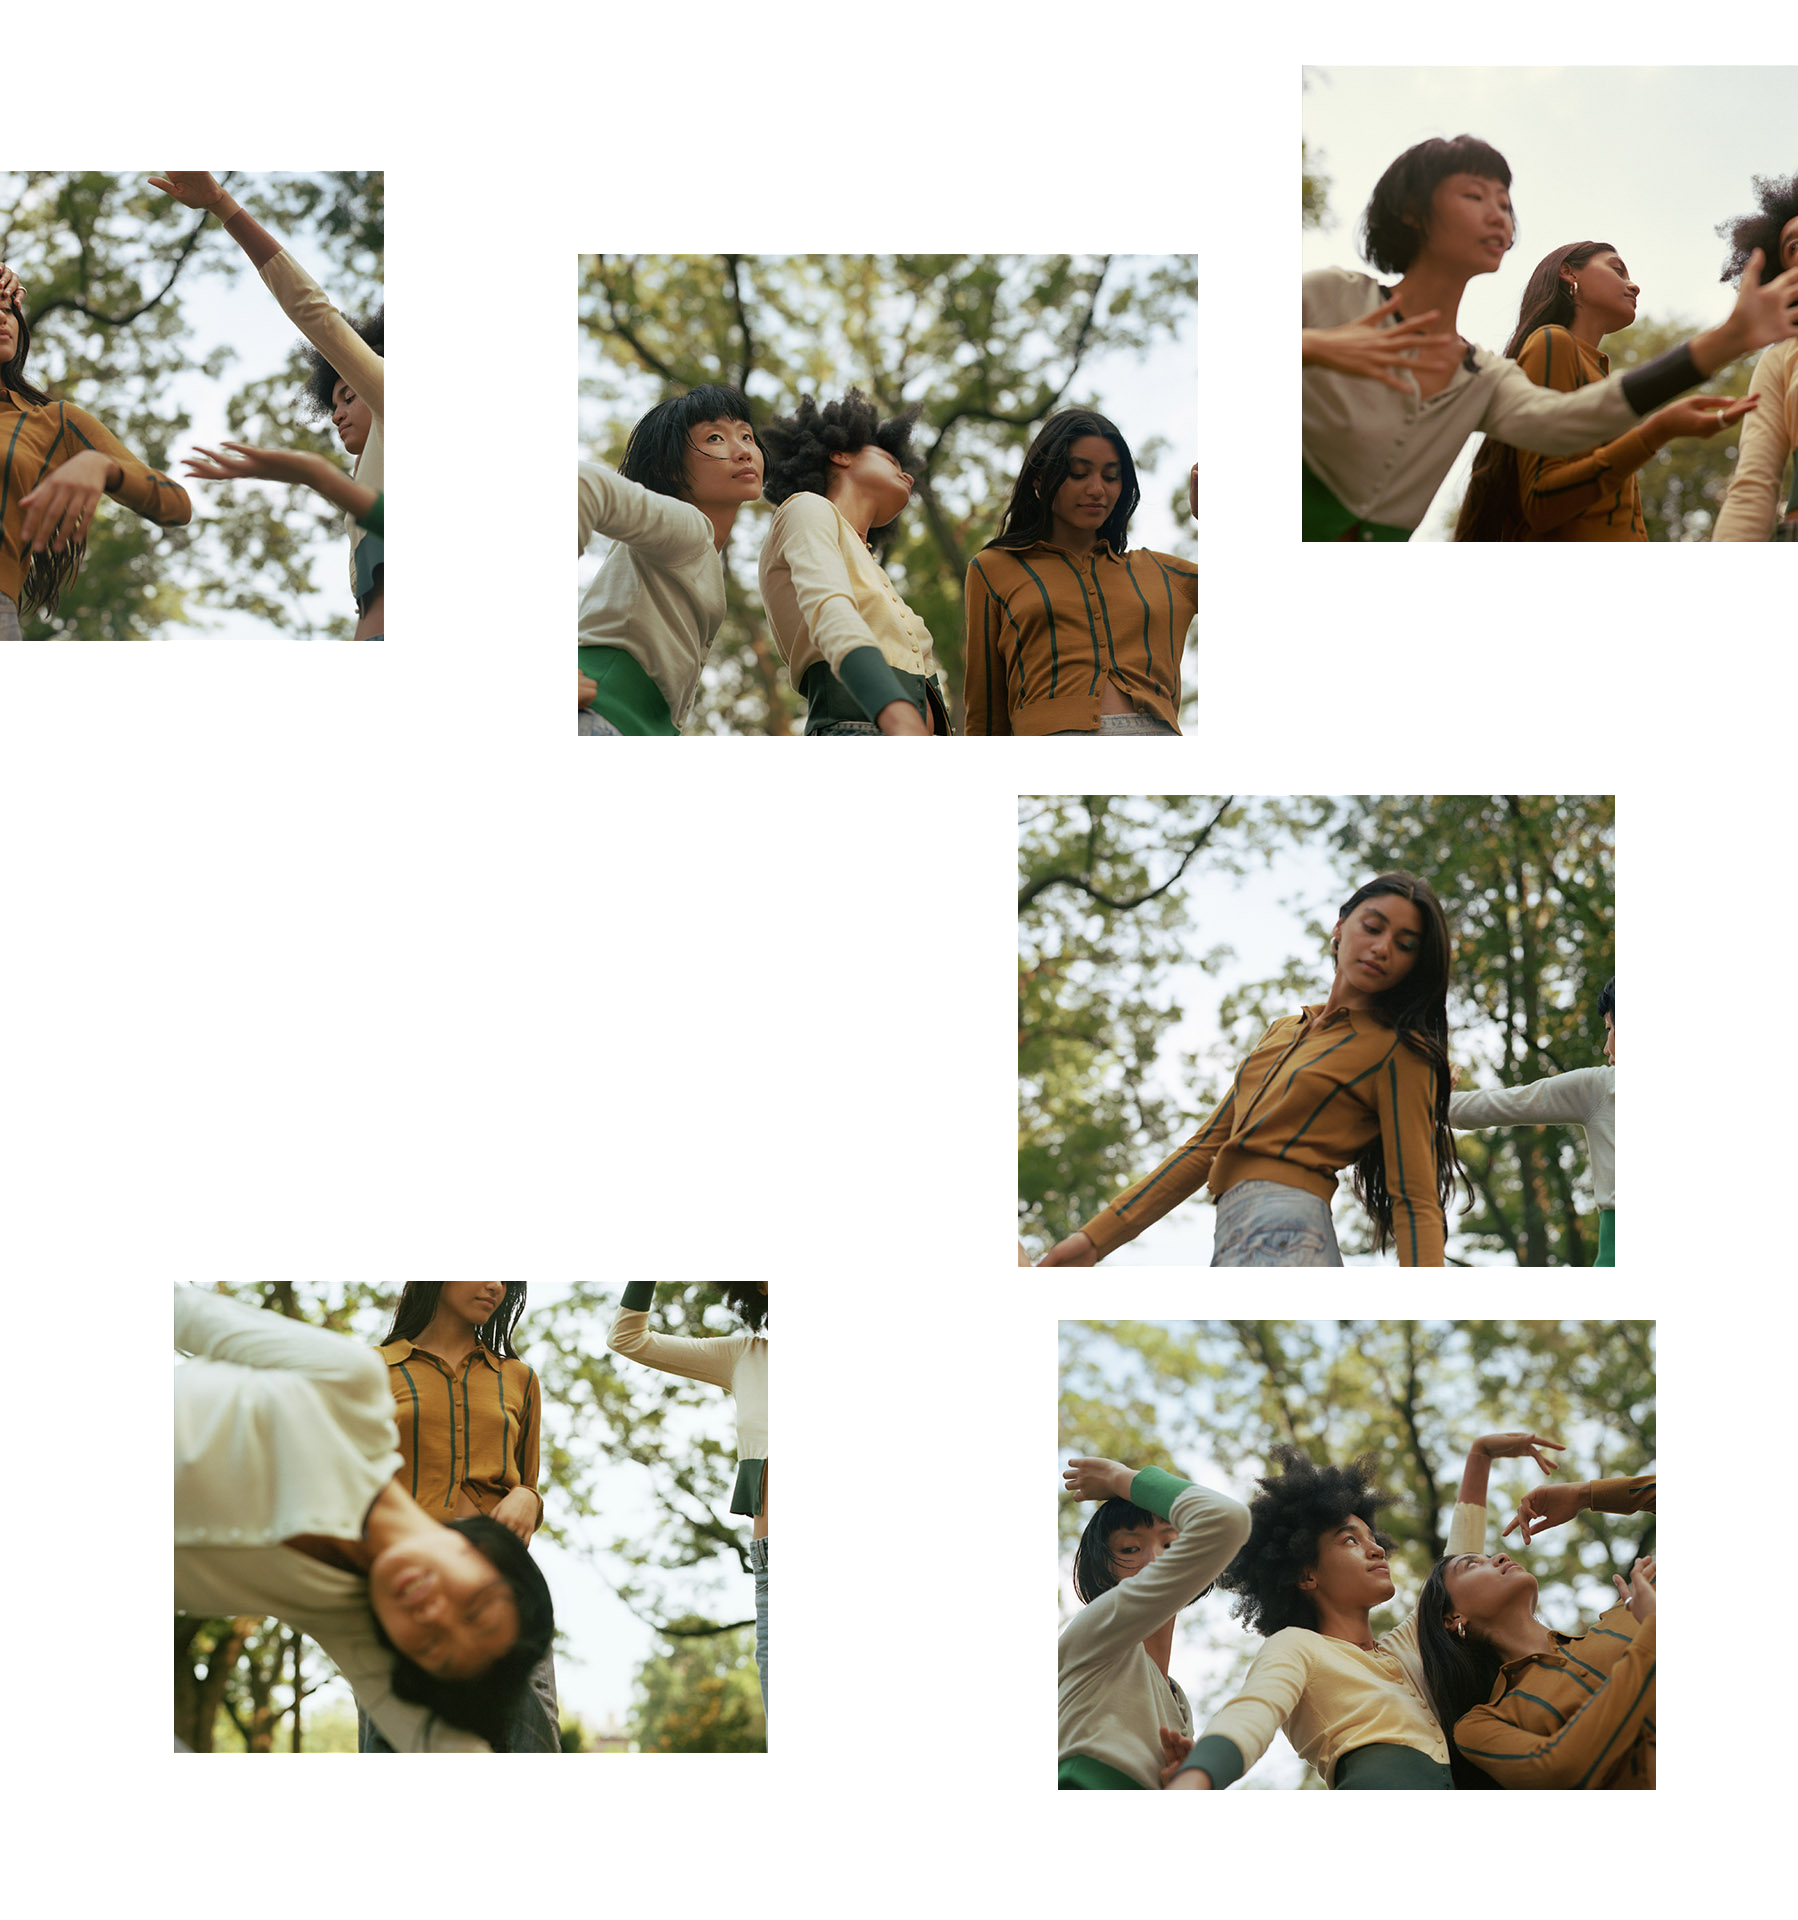 collage of pictures of models in nature by Oumayma B Tanfous for Sustainability Emerging Designers in Flaunt Magazine